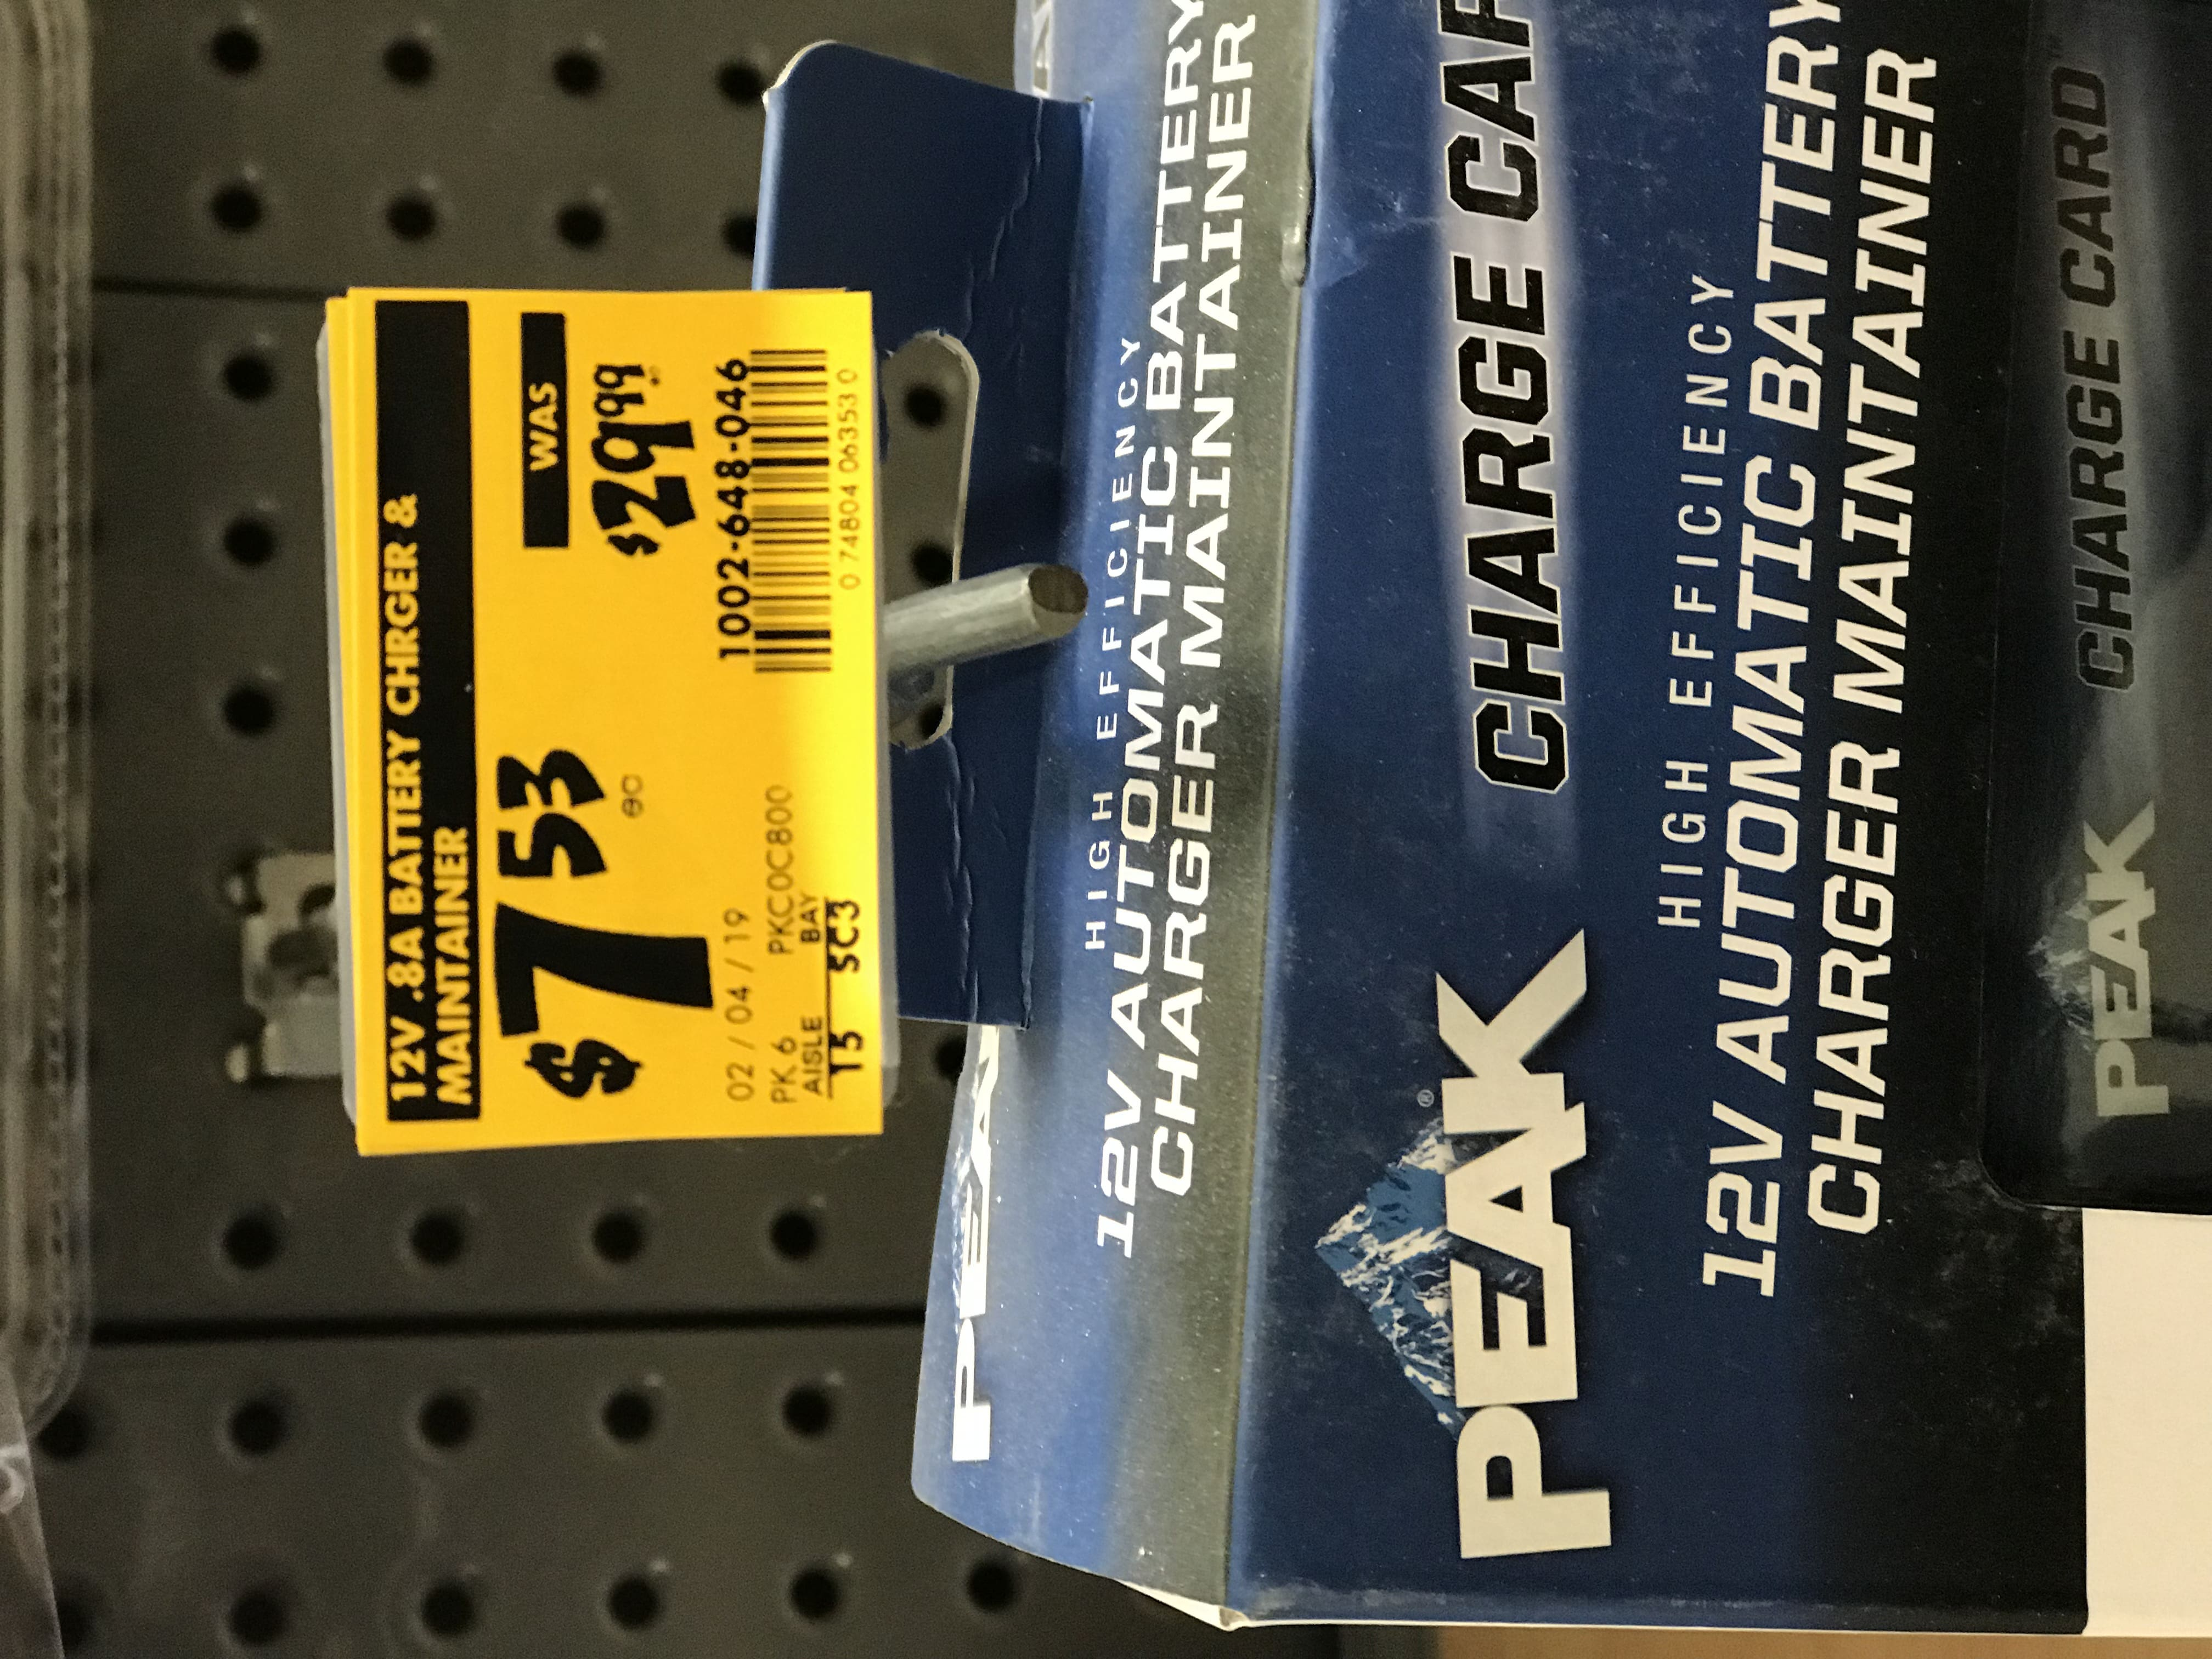 YMMV Peak battery maintainers (.8 and 1.5 amp models) $7.53